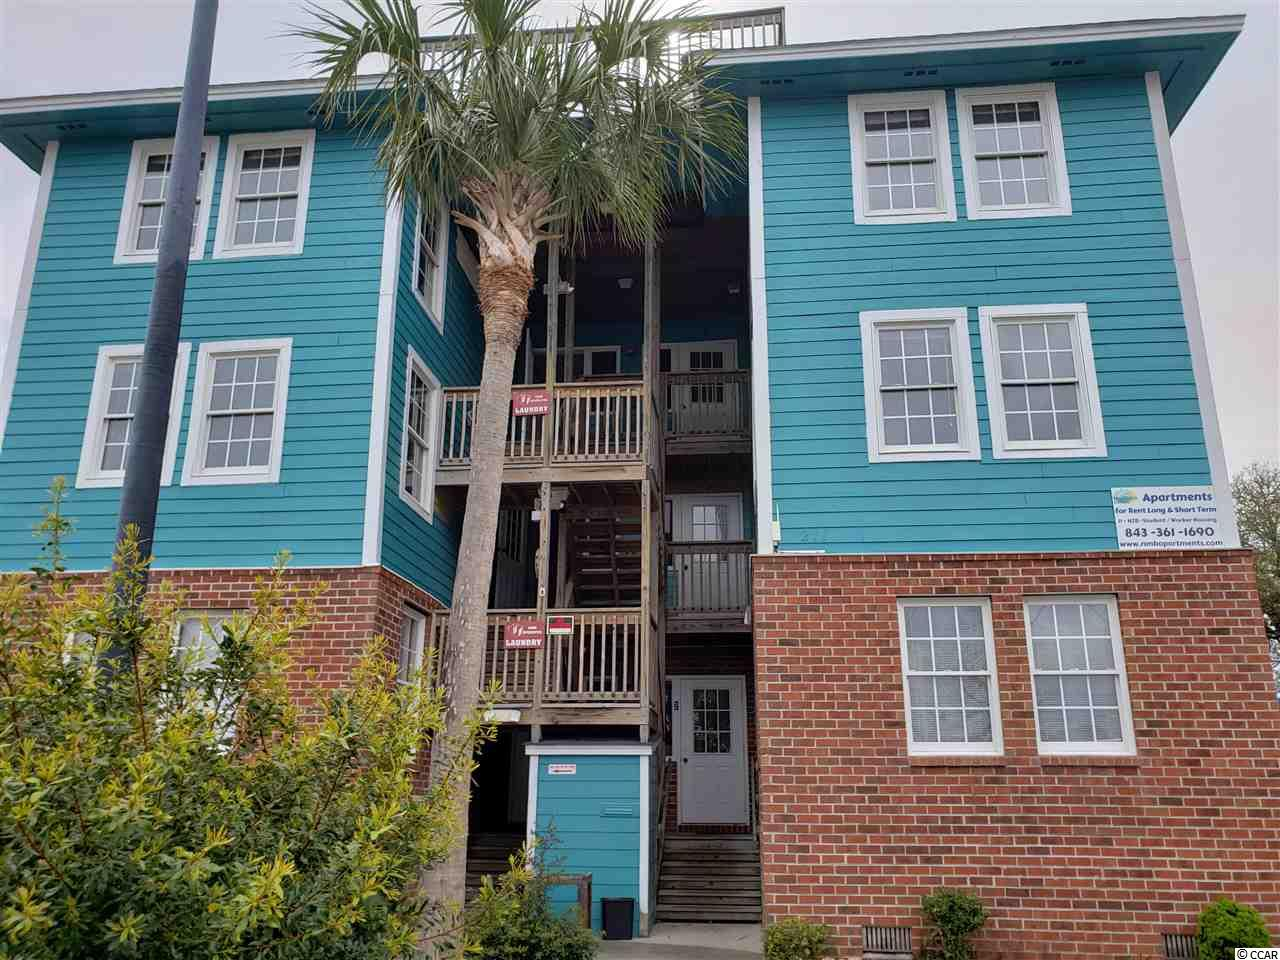 A six unit building built on a commercial lot across from Ocean Blvd and behind Main St in NMB.  Built in 2003, six 2 bedroom units in a well maintained structure at  a prime location.  The seller has the building next door for sale as well.